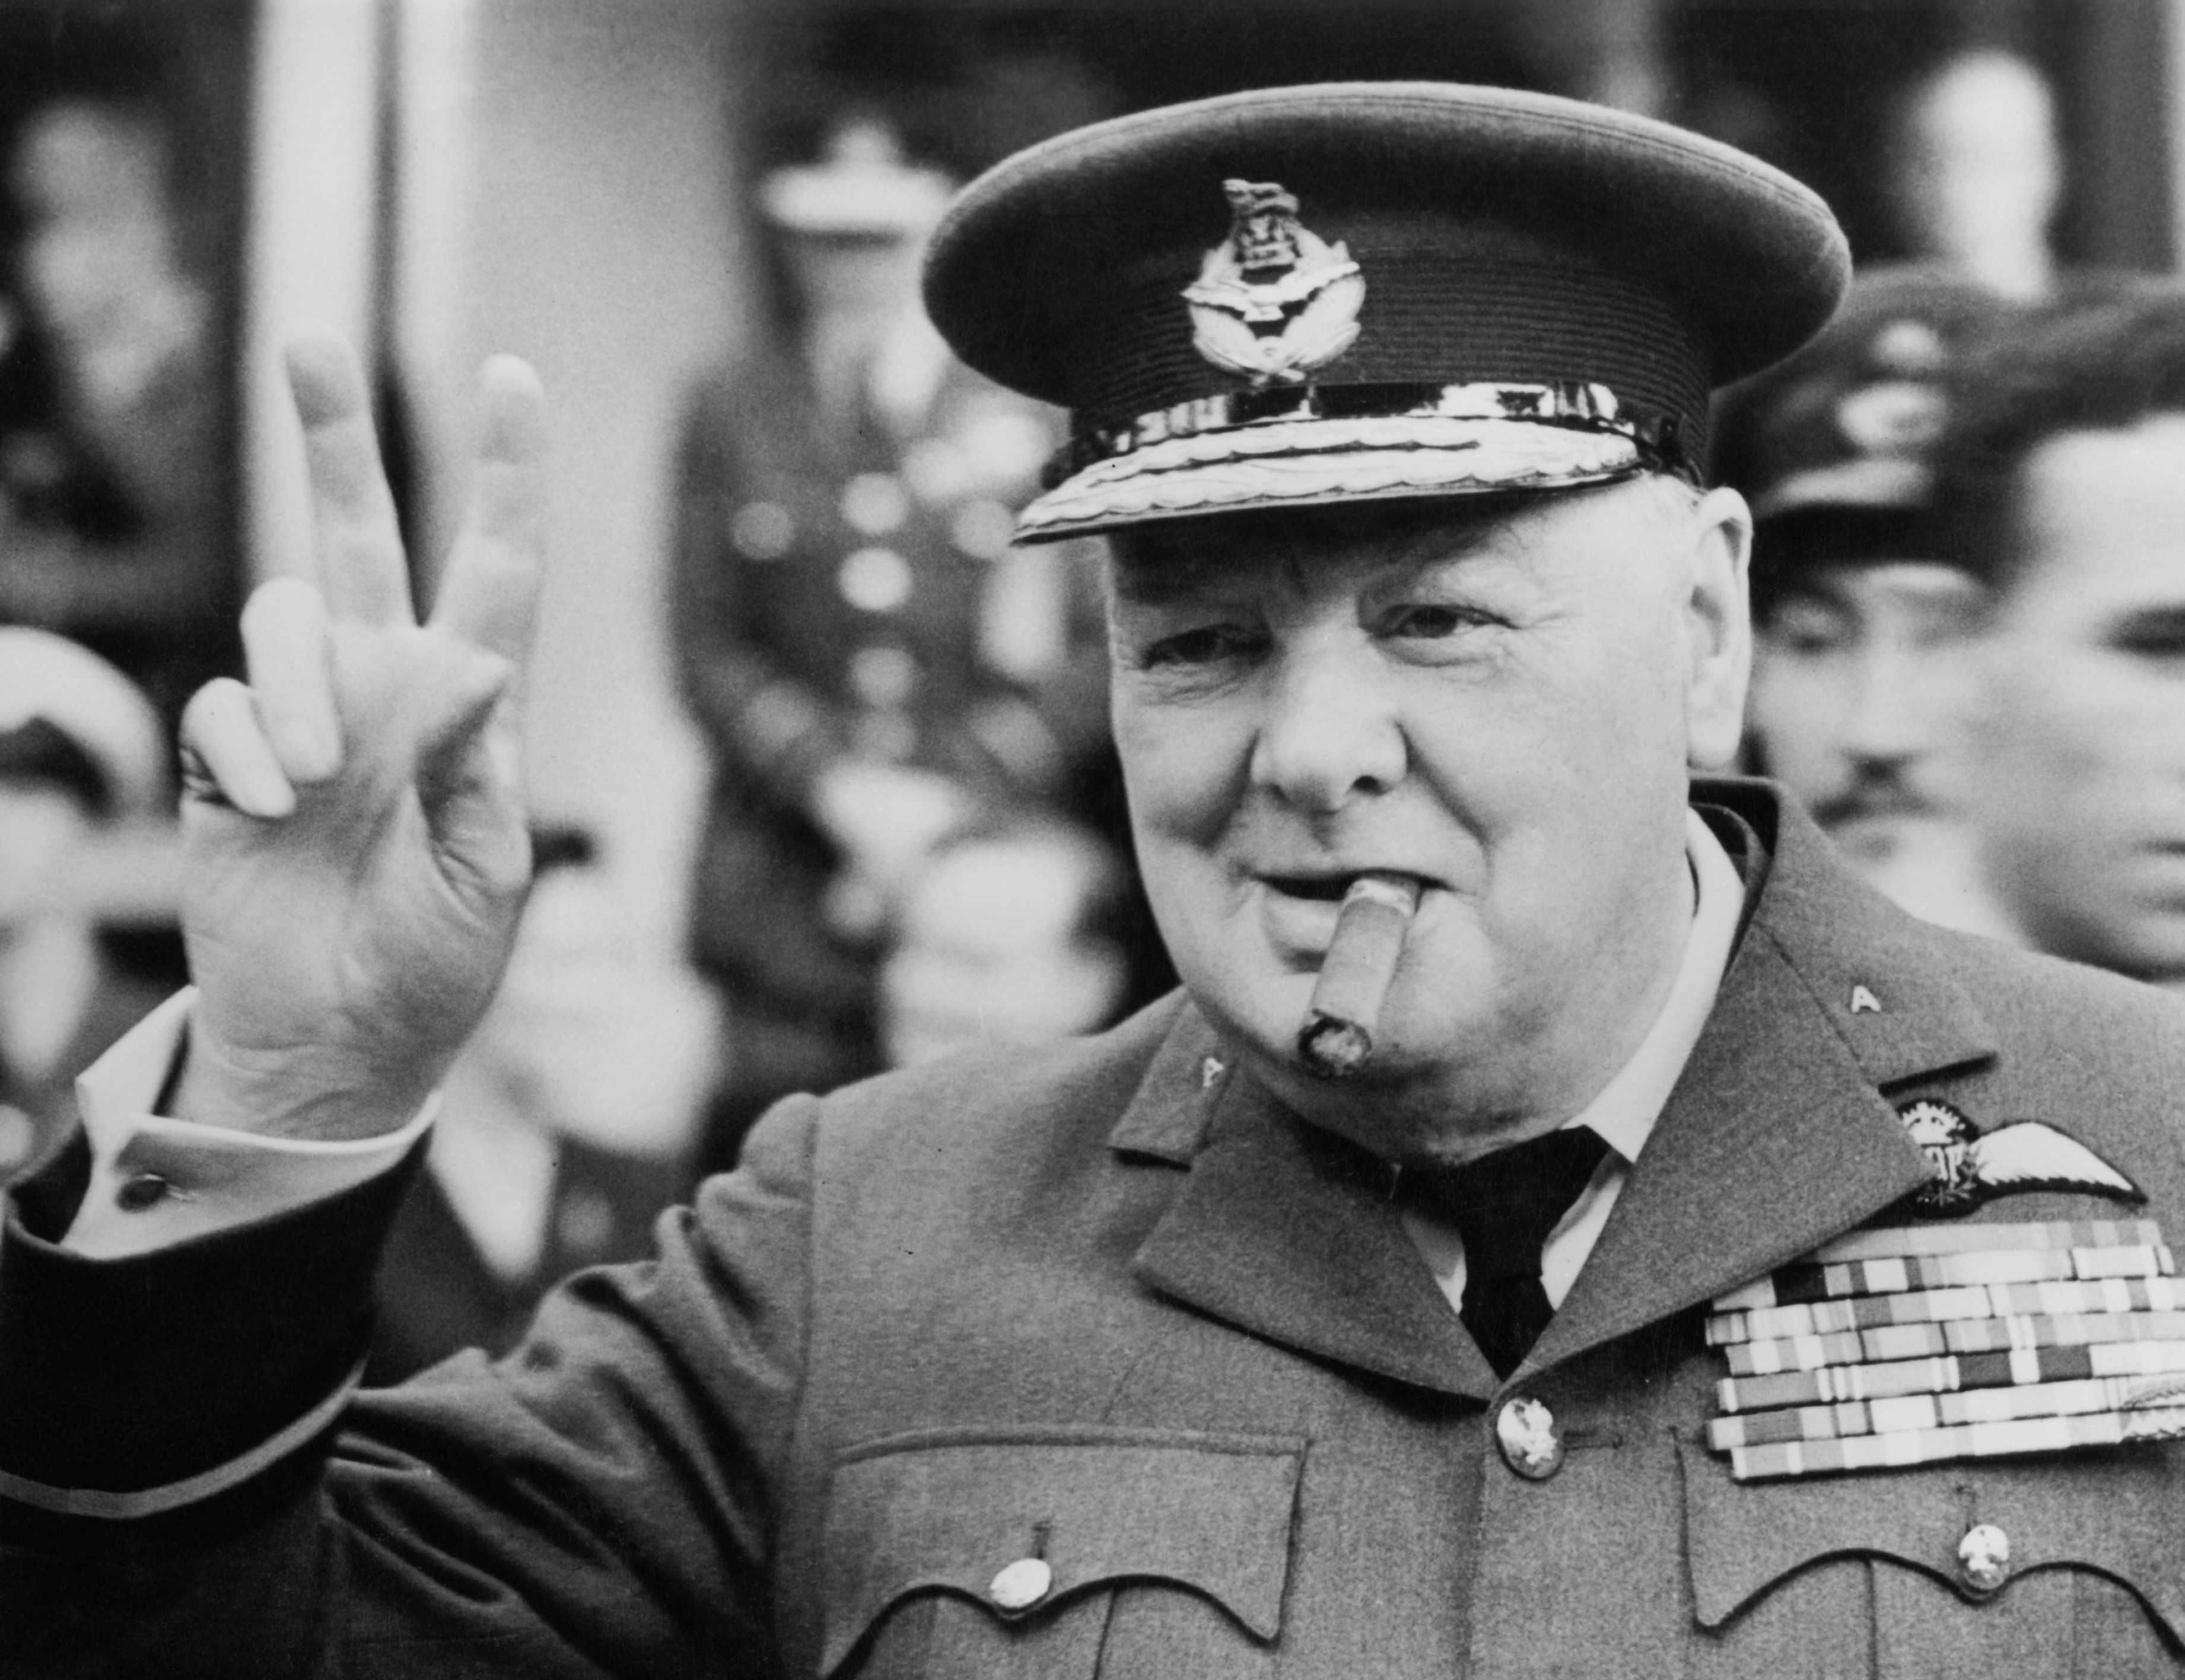 Winston Churchill (1874 - 1965) gives his famous v-sign as he opens the new headquarters of 615 (County of Surrey) Squadron of the RAAF (Royal Auxiliary Air Force) at Croydon, 1948. (Photo by Central Press/Hulton Archive/Getty Images)